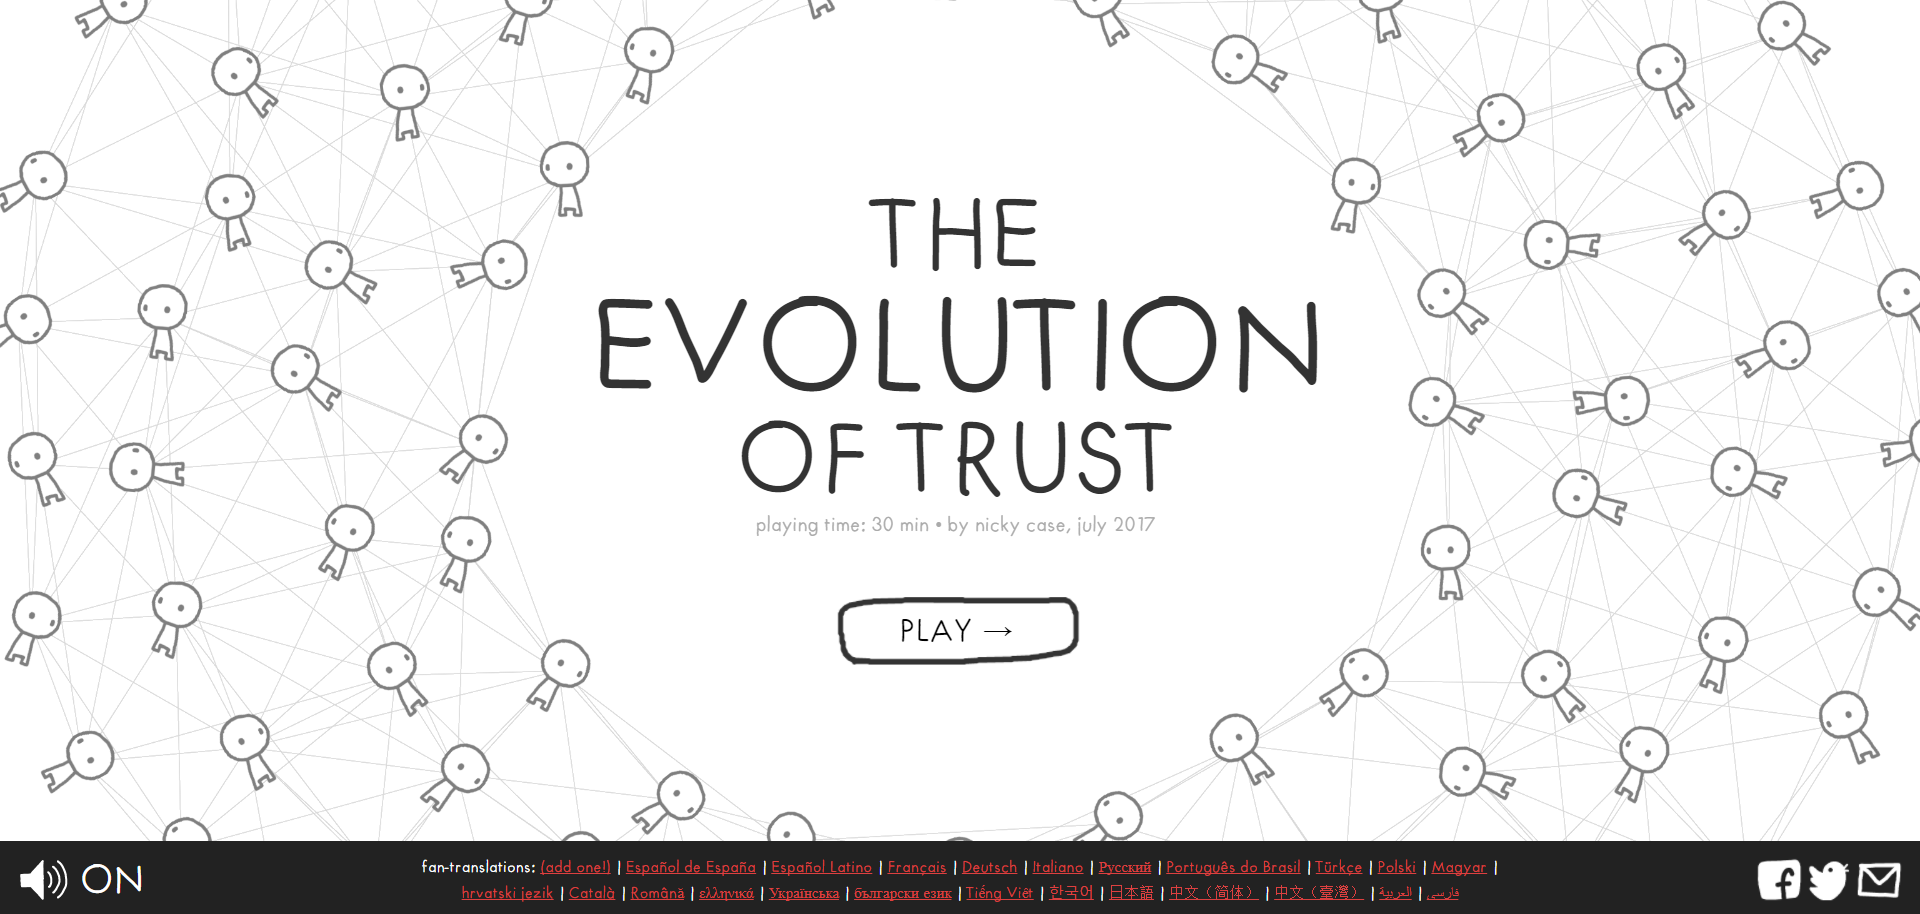 The best, funnest, cutest website explaining Trust ever